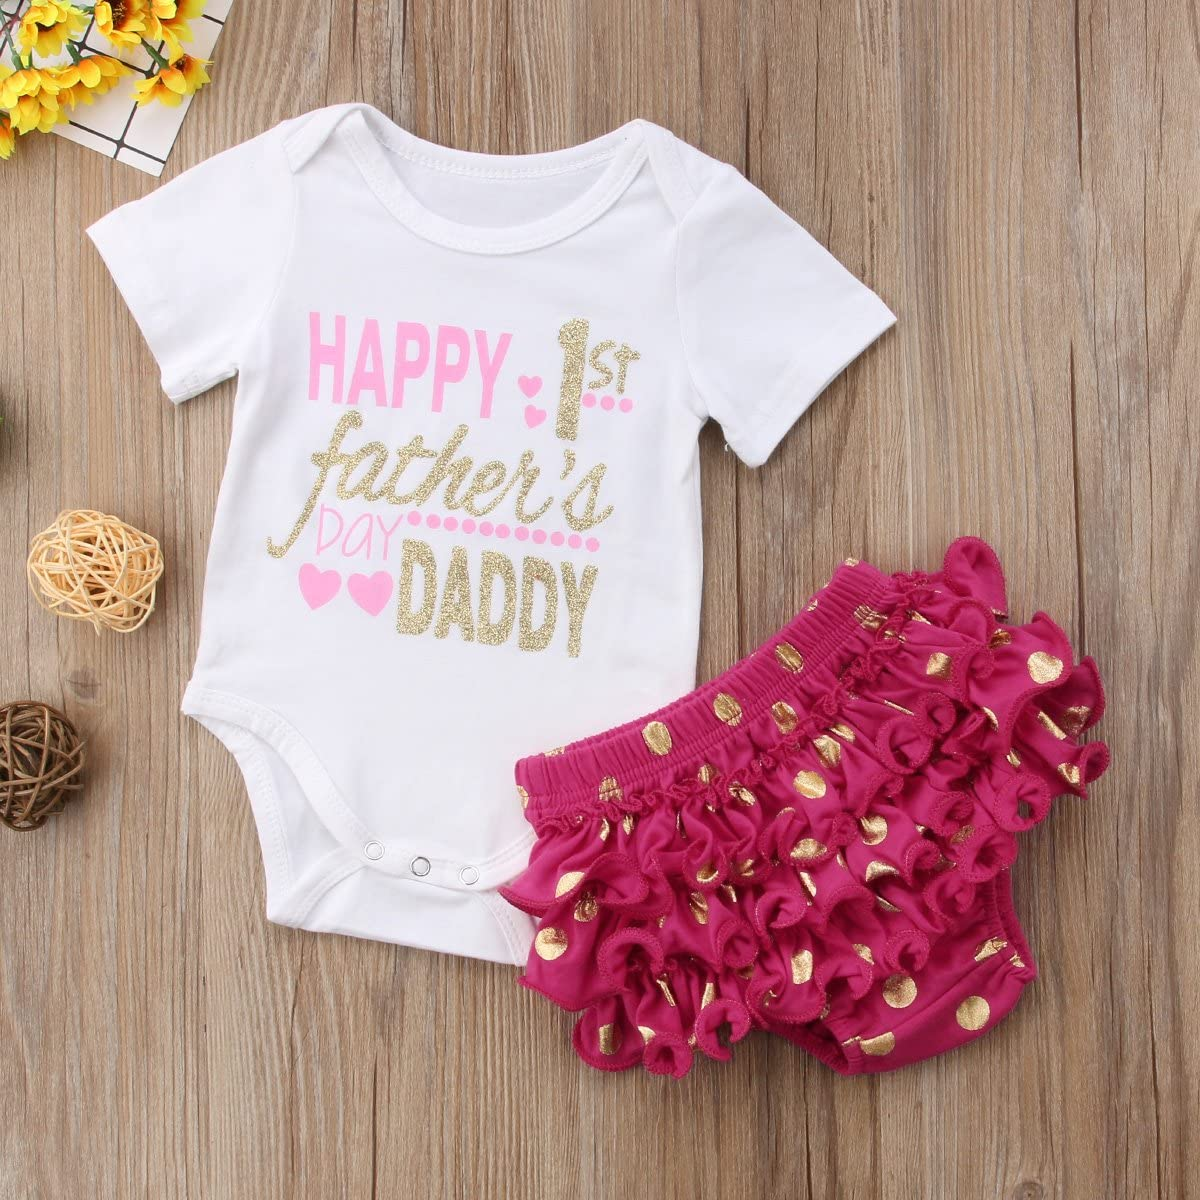 ONES Baby Girls Fathers Day Outfits Short Sleeve Romper /& Polka Dot Ruffle Short